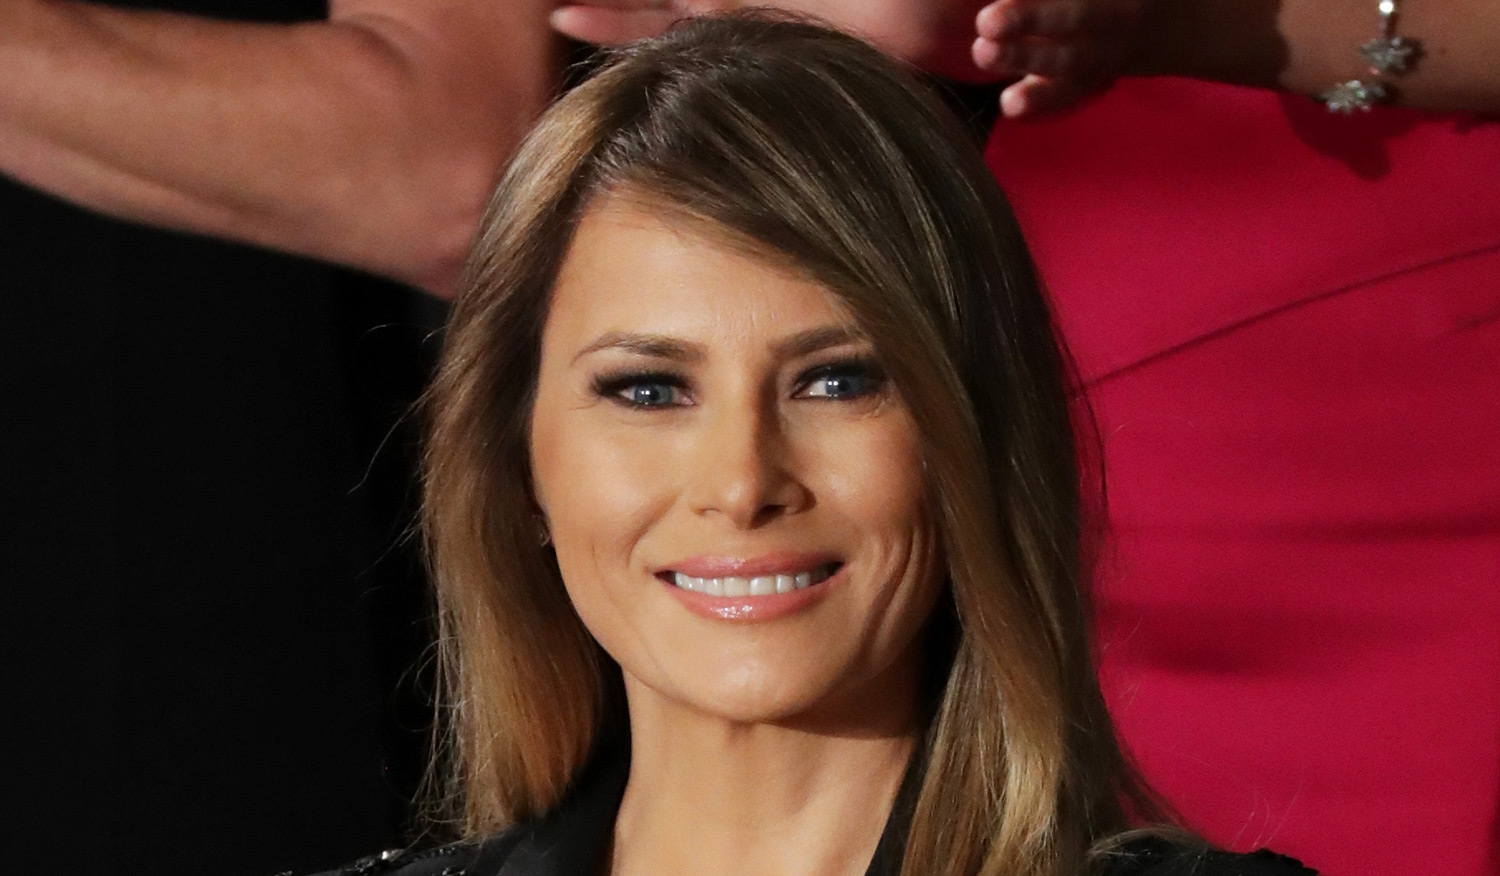 Melania Trump's Official Portrait Released by White House ...